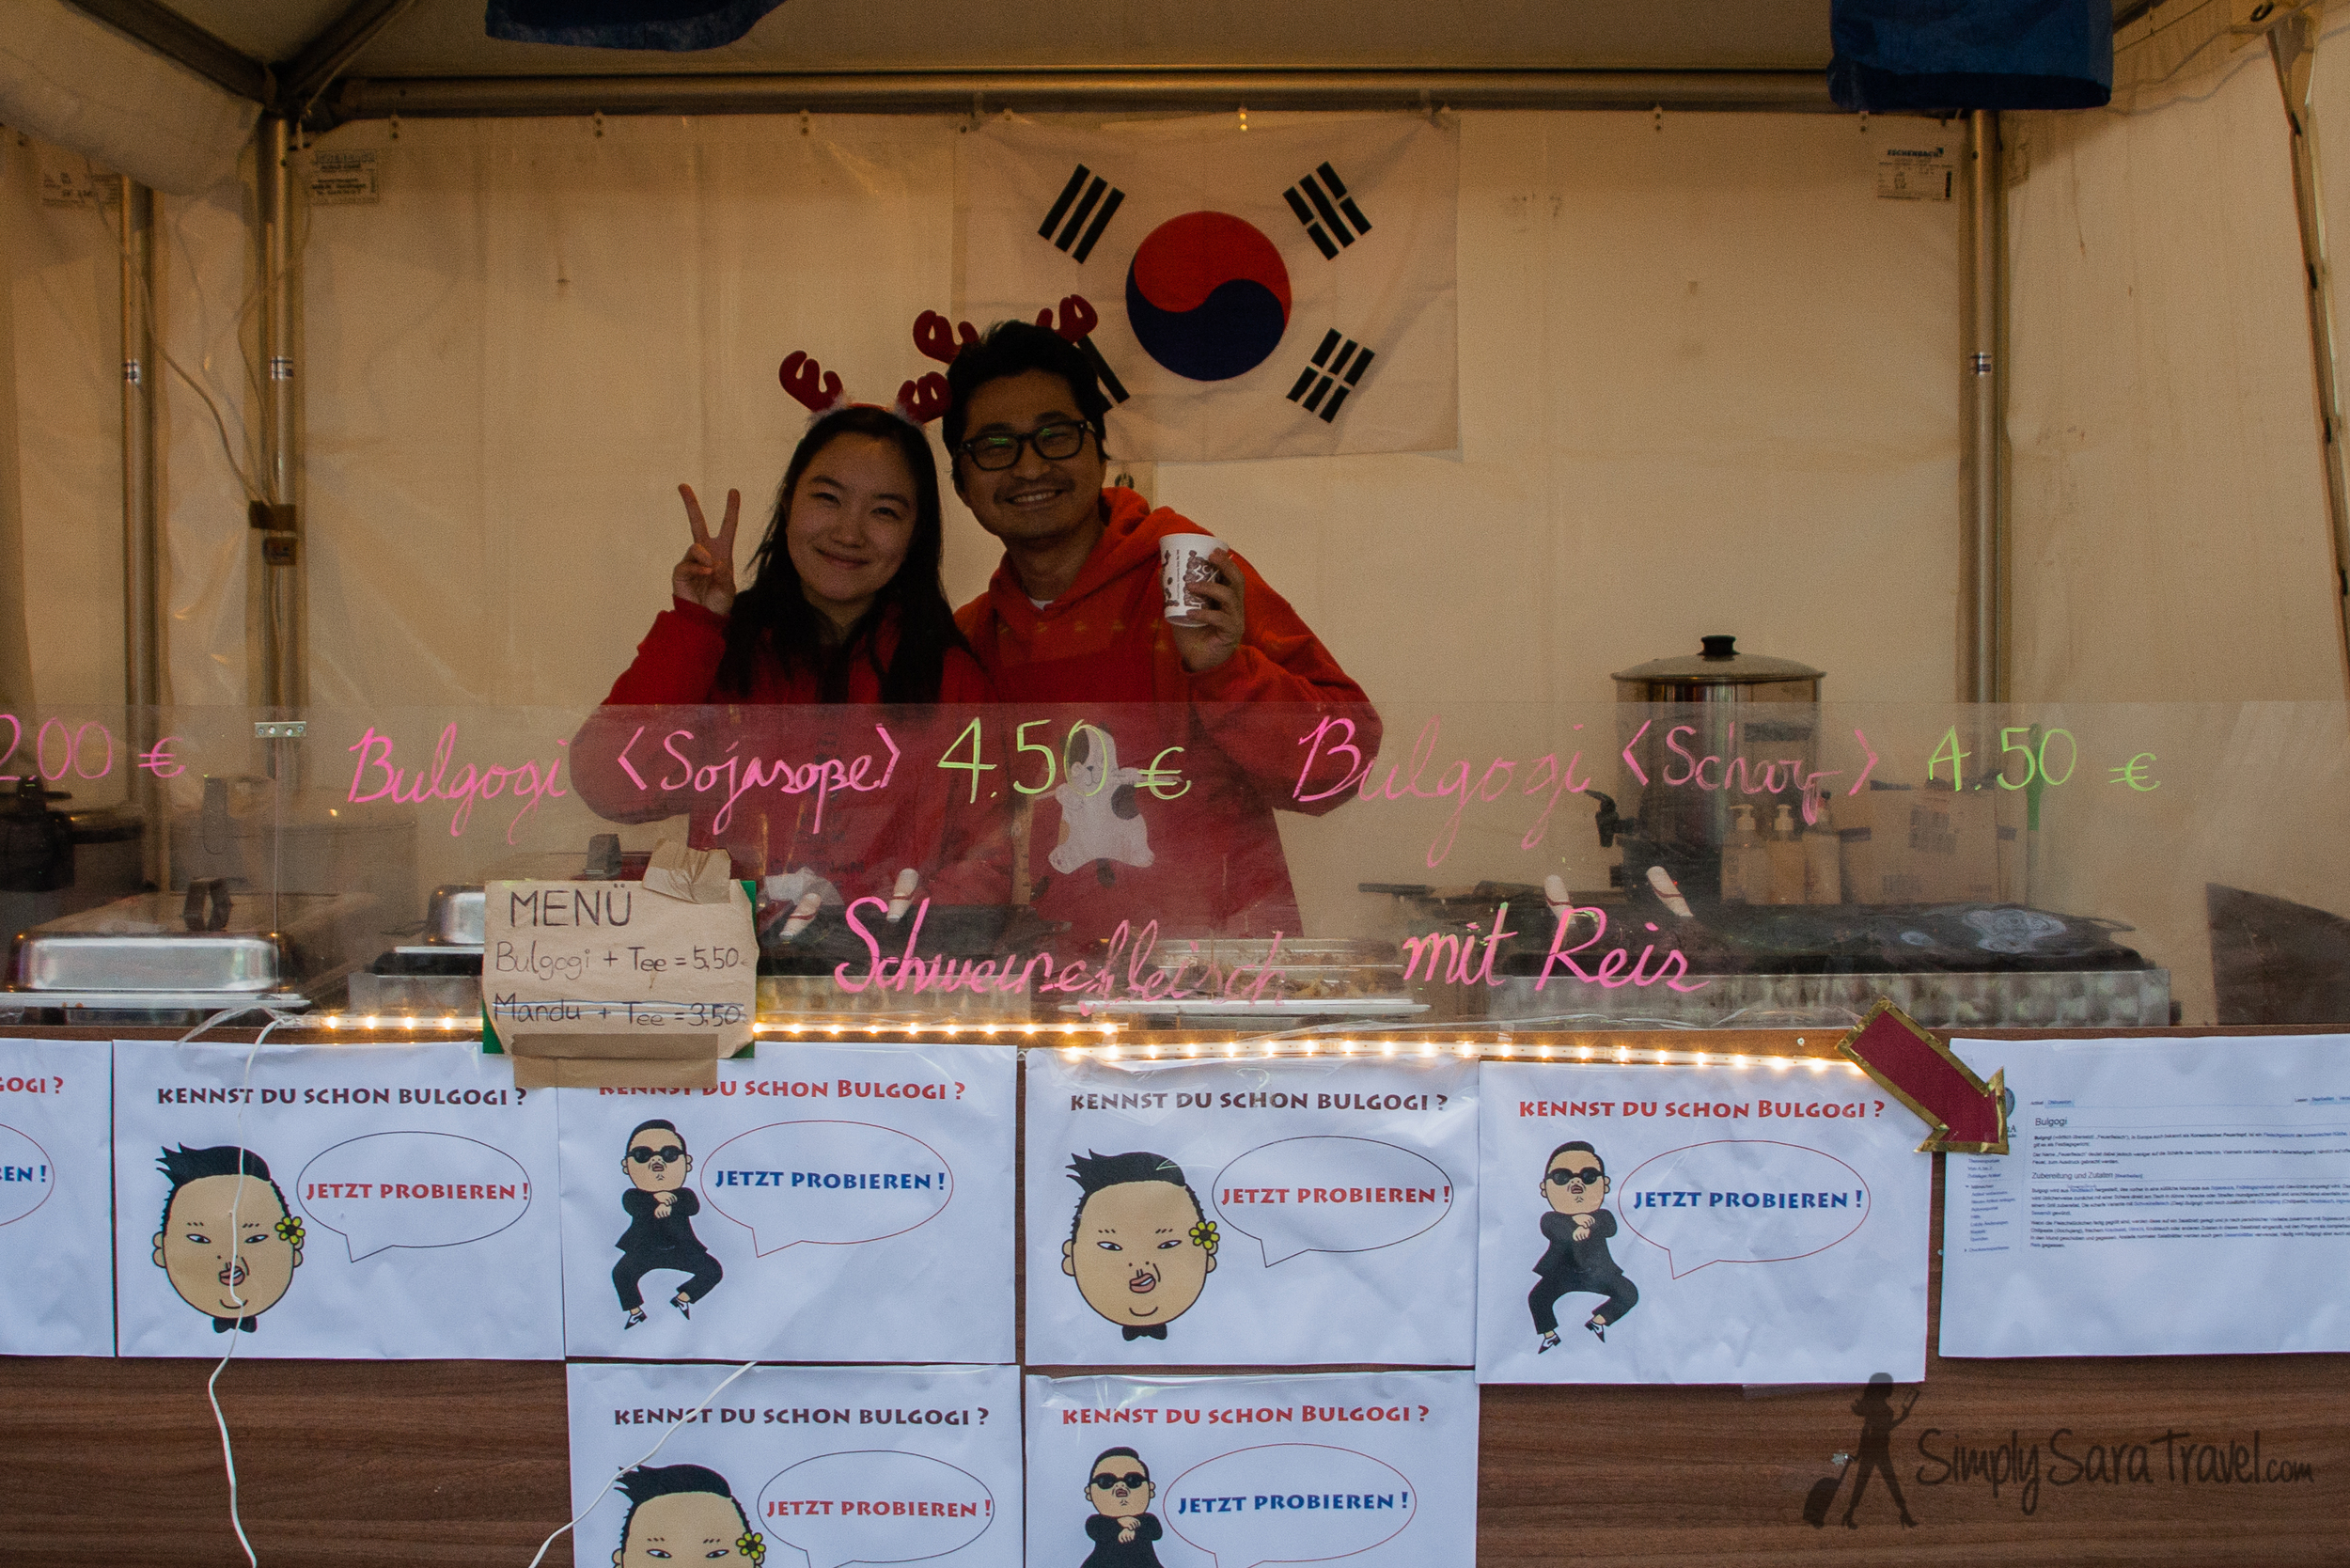 """The  Augustusmarkt  in Dresden featured a vast variety of international foods. The """"K-food Gangnam Style"""" was a spirited, friendly stand!"""